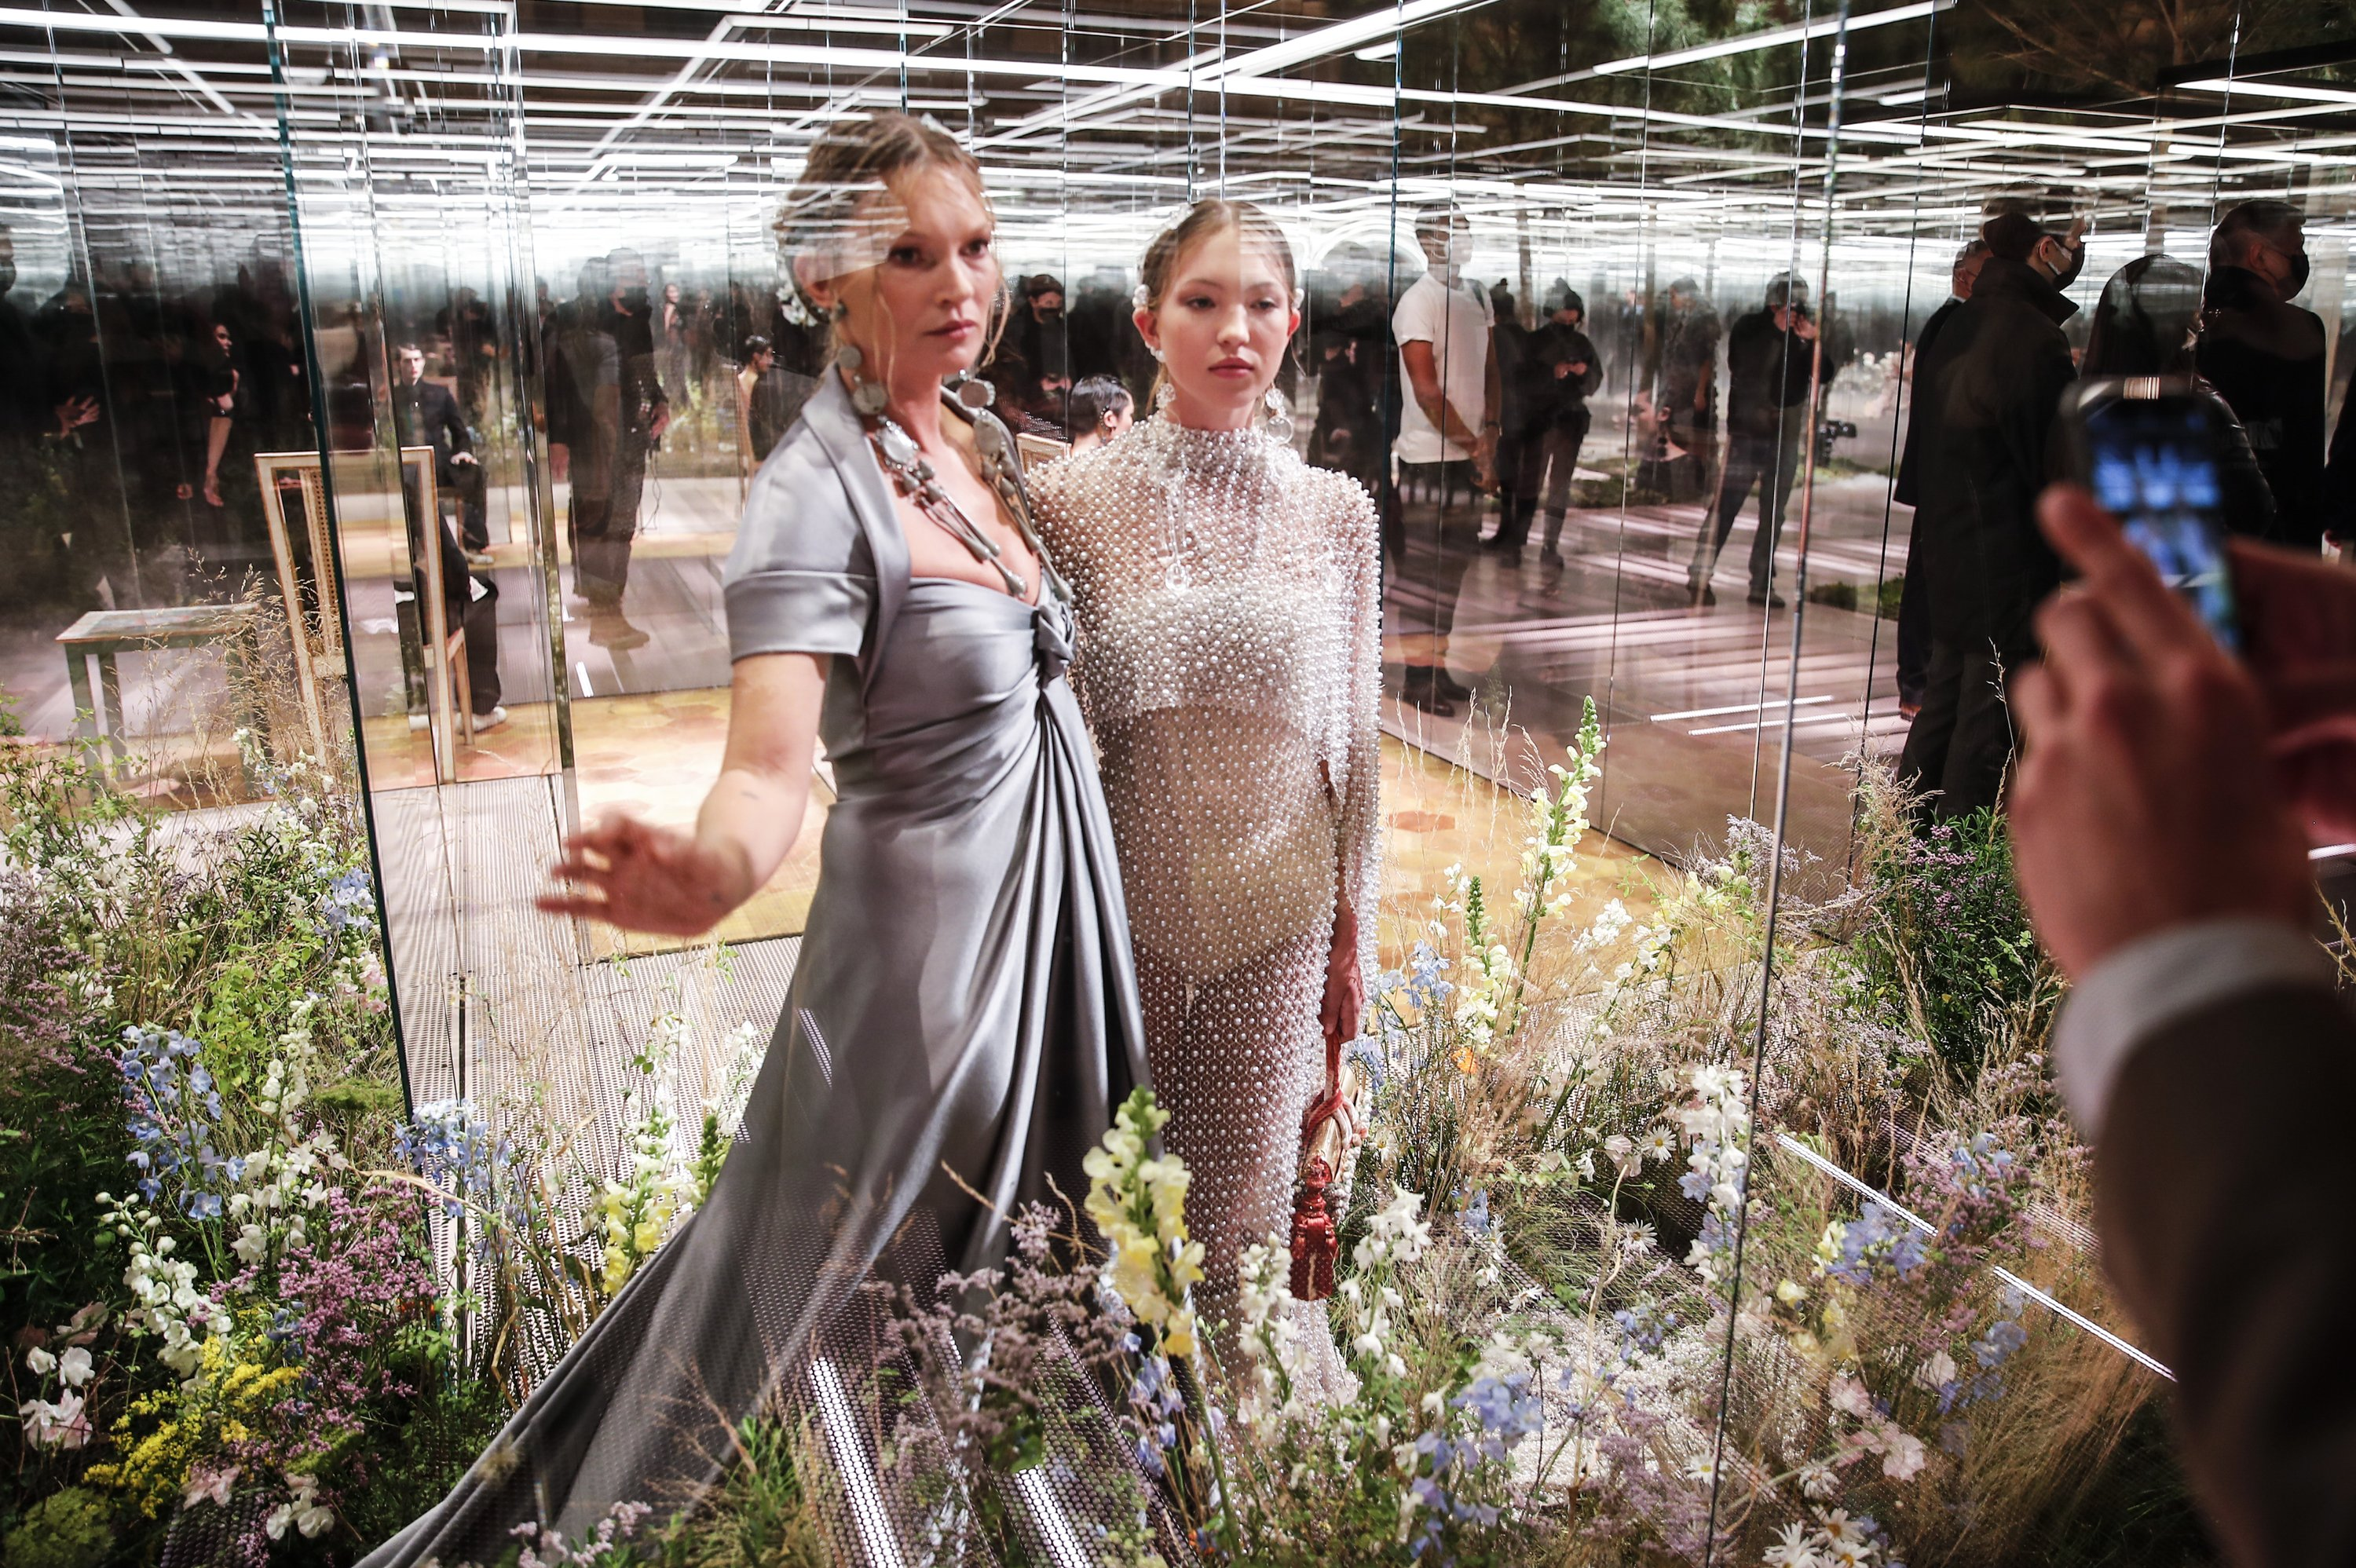 Fashion industry evolves, as virus forces a rethink - Associated Press